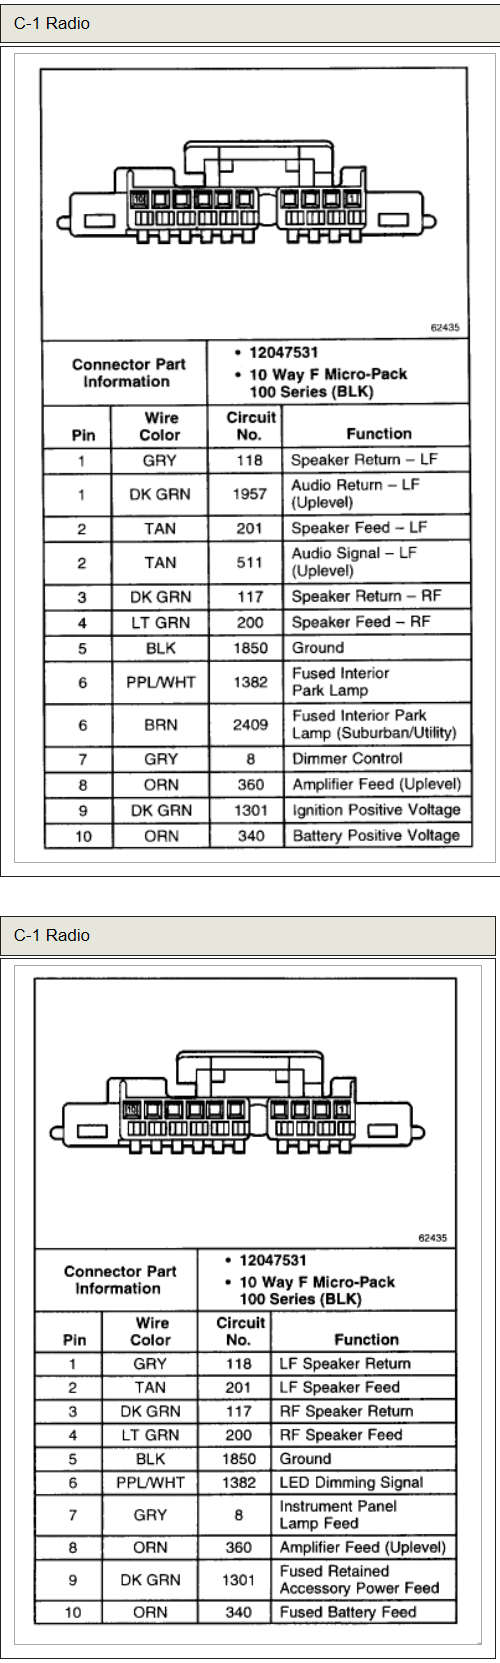 2003 Chevrolet Malibu Wiring Diagram Wiring Diagram Database Database Fotoclub Waldkirch De